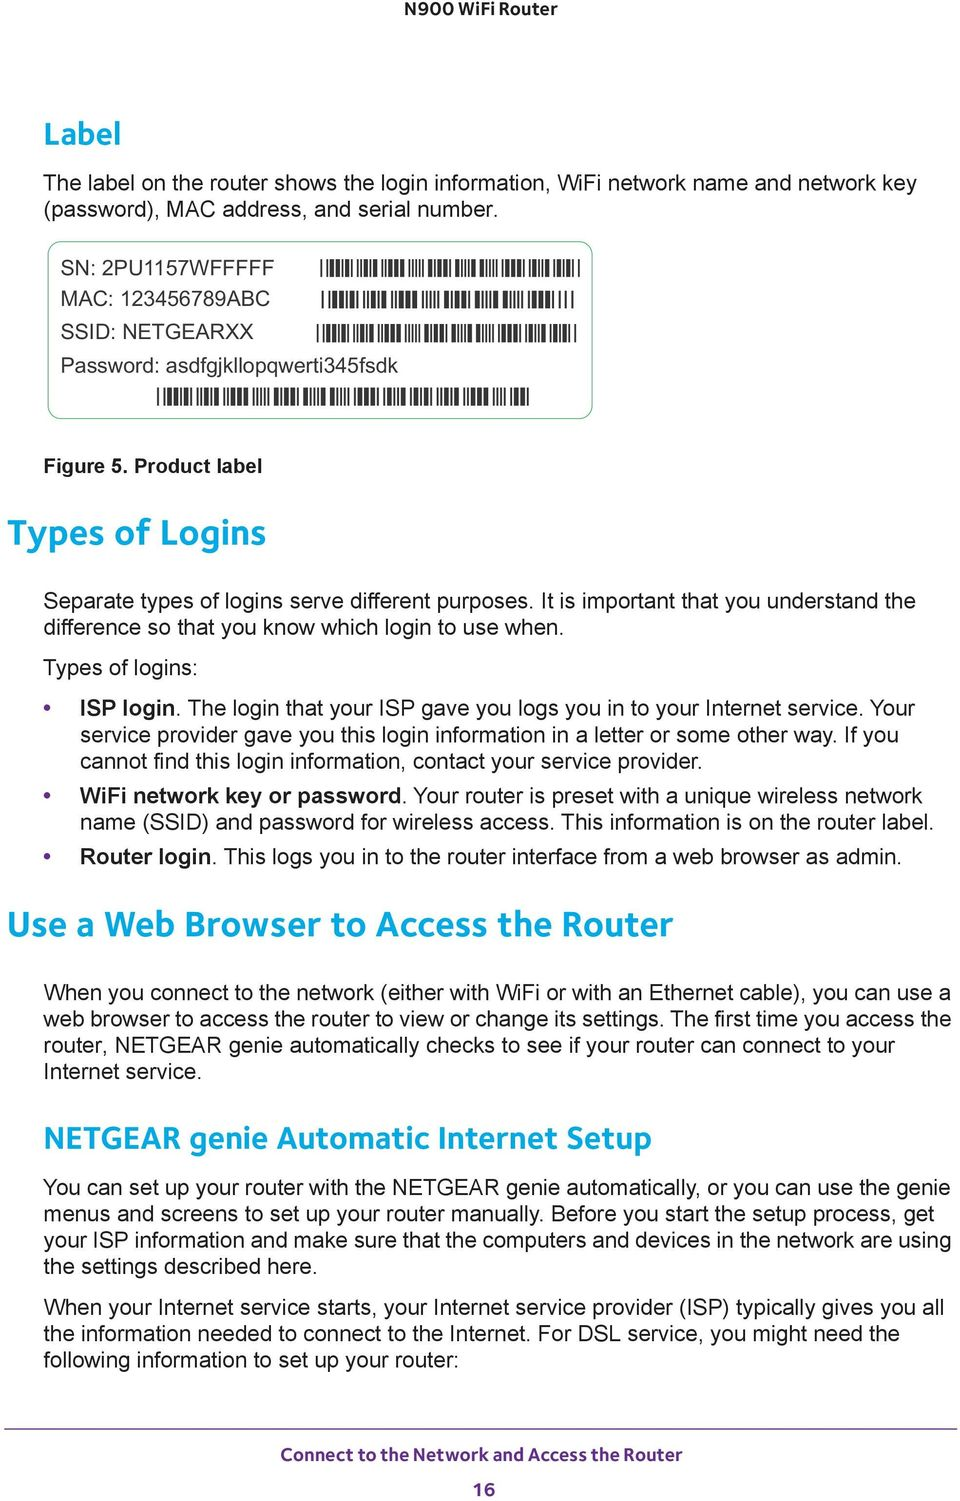 It is important that you understand the difference so that you know which login to use when. Types of logins: ISP login. The login that your ISP gave you logs you in to your Internet service.